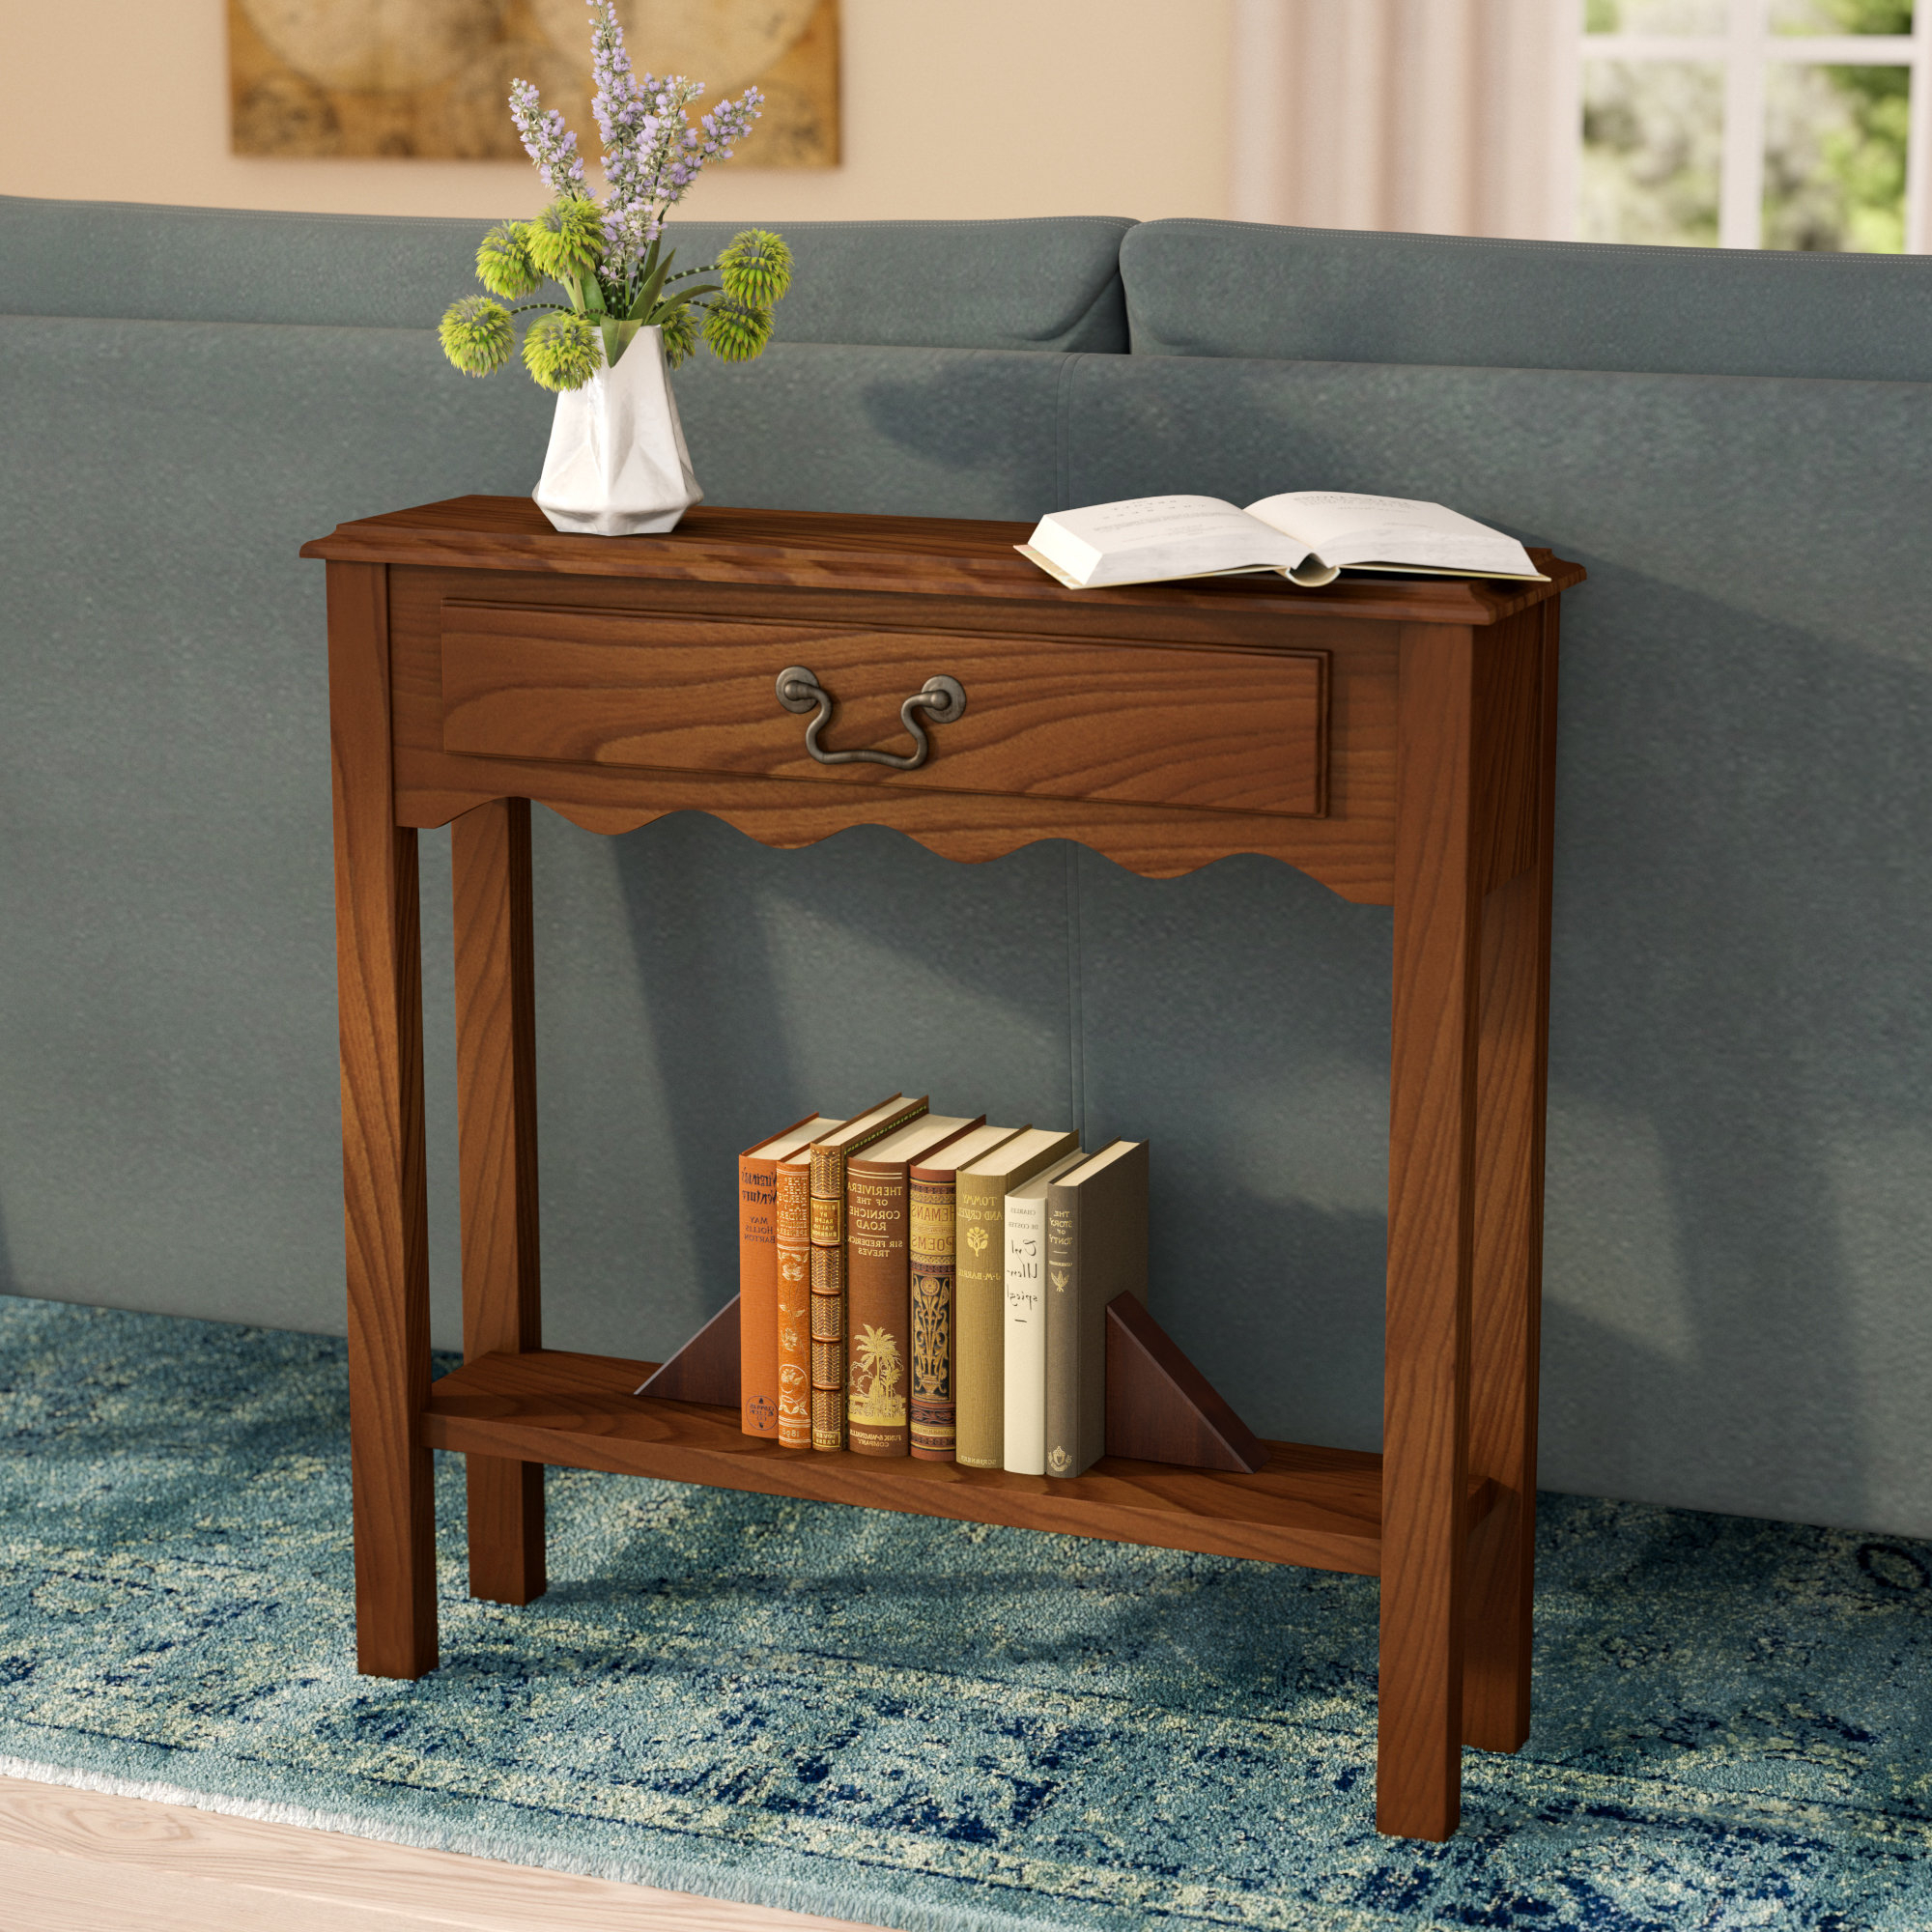 Small Corner Console Table | Wayfair In Layered Wood Small Square Console Tables (View 11 of 20)